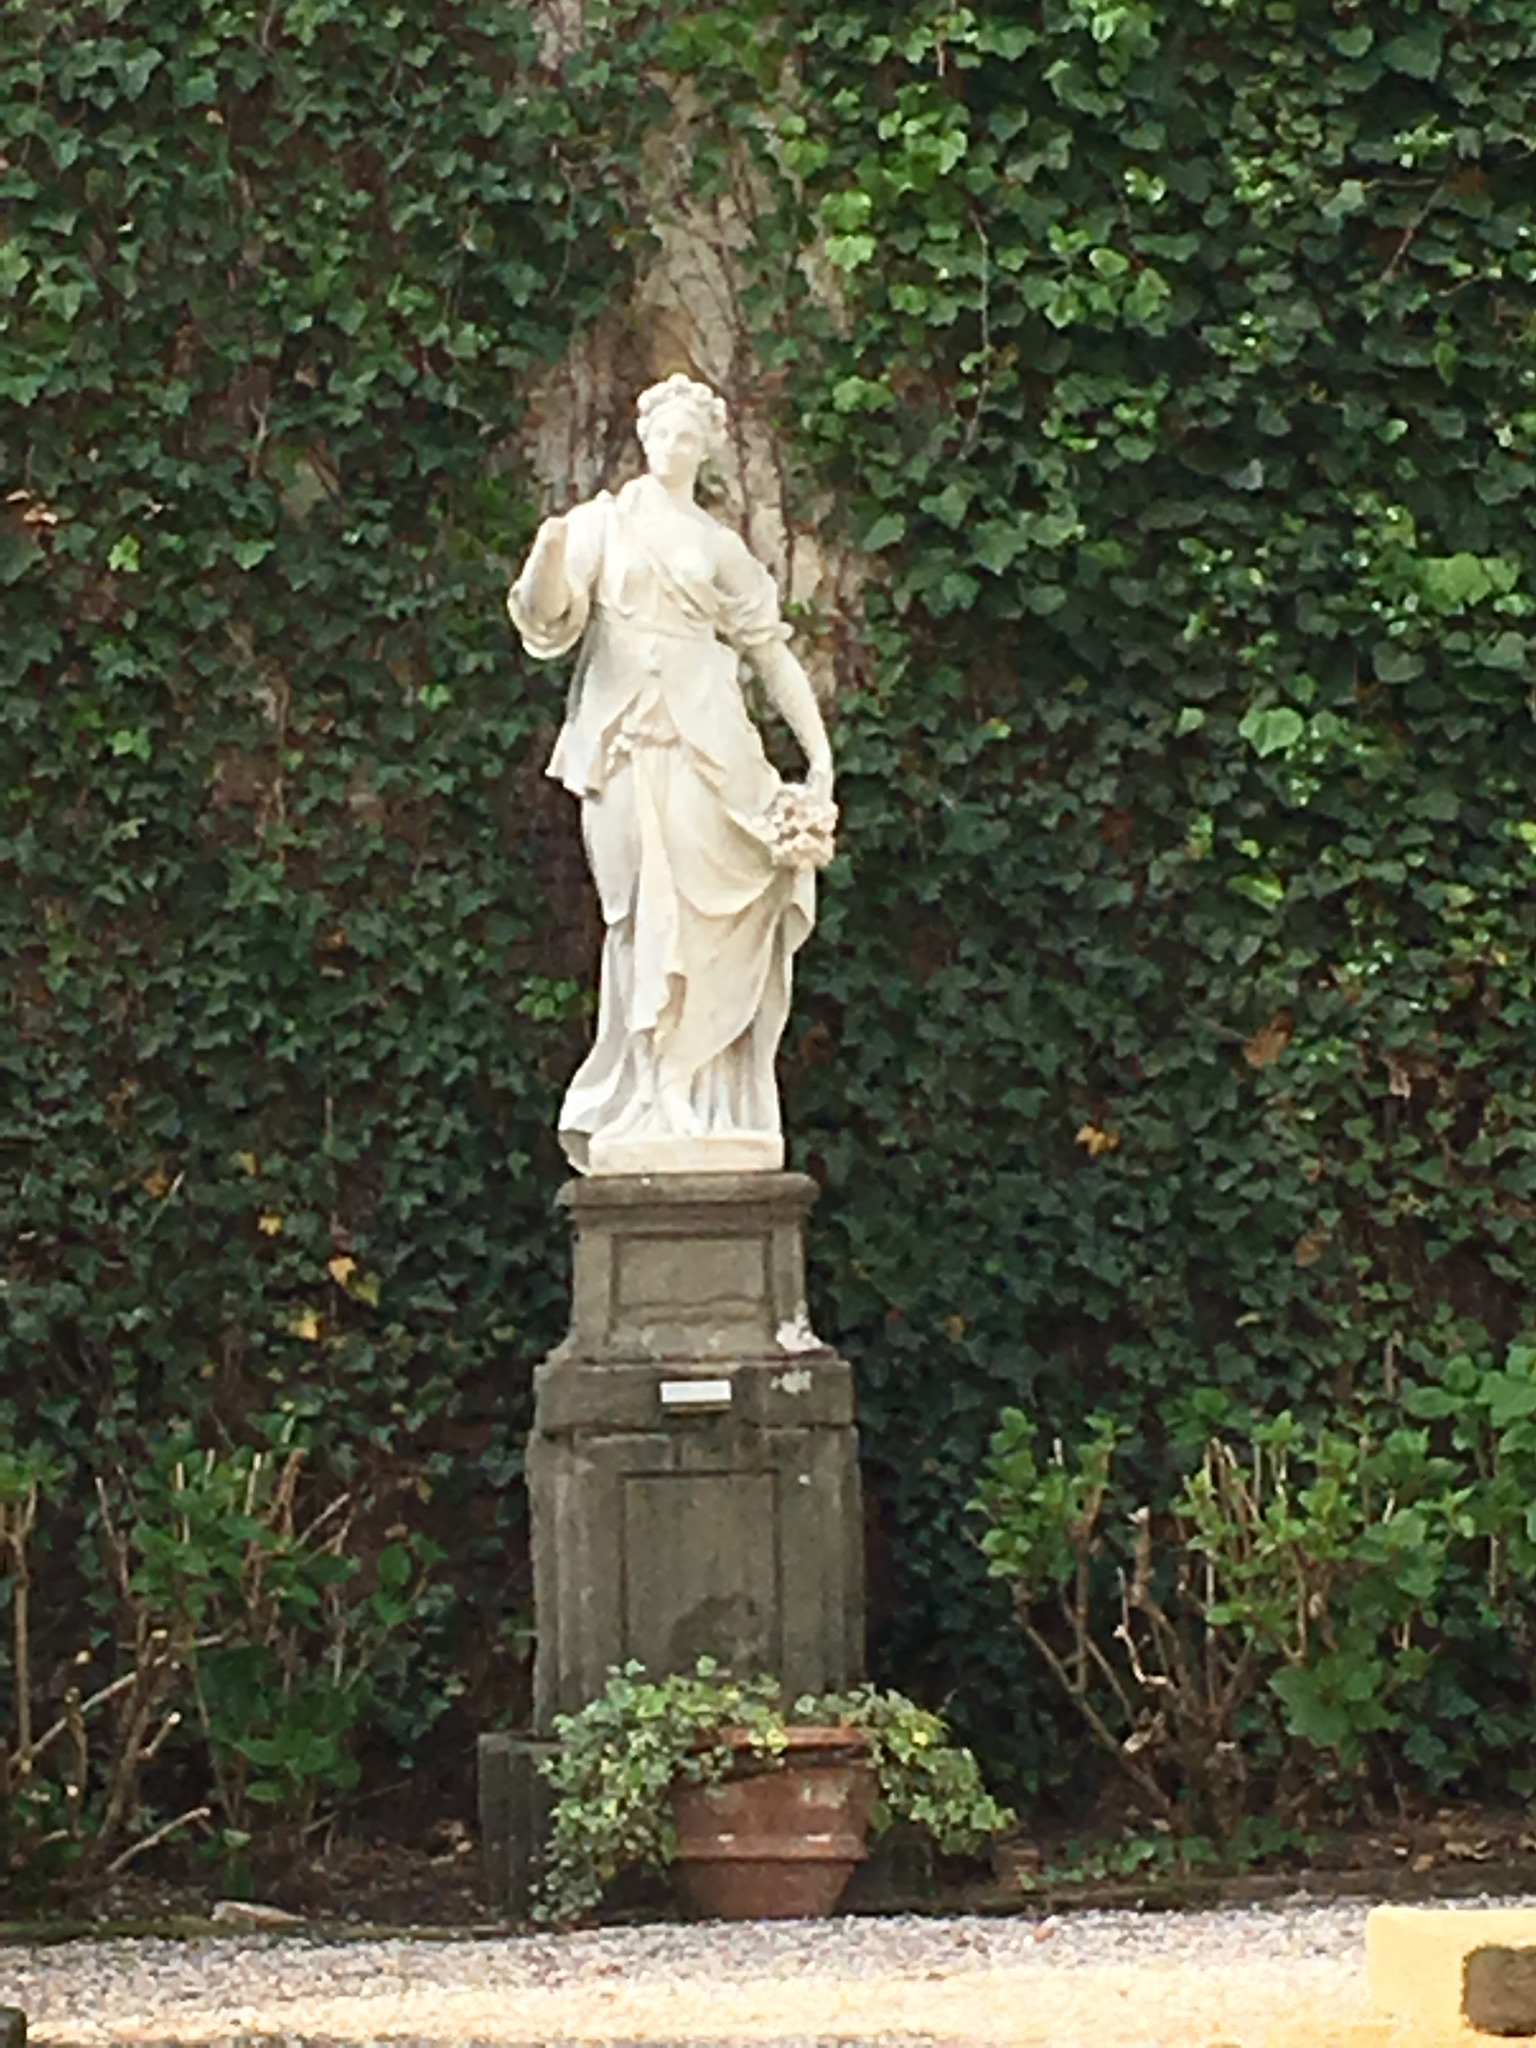 Statue of the goddess Spring, Palazzo Pfanner